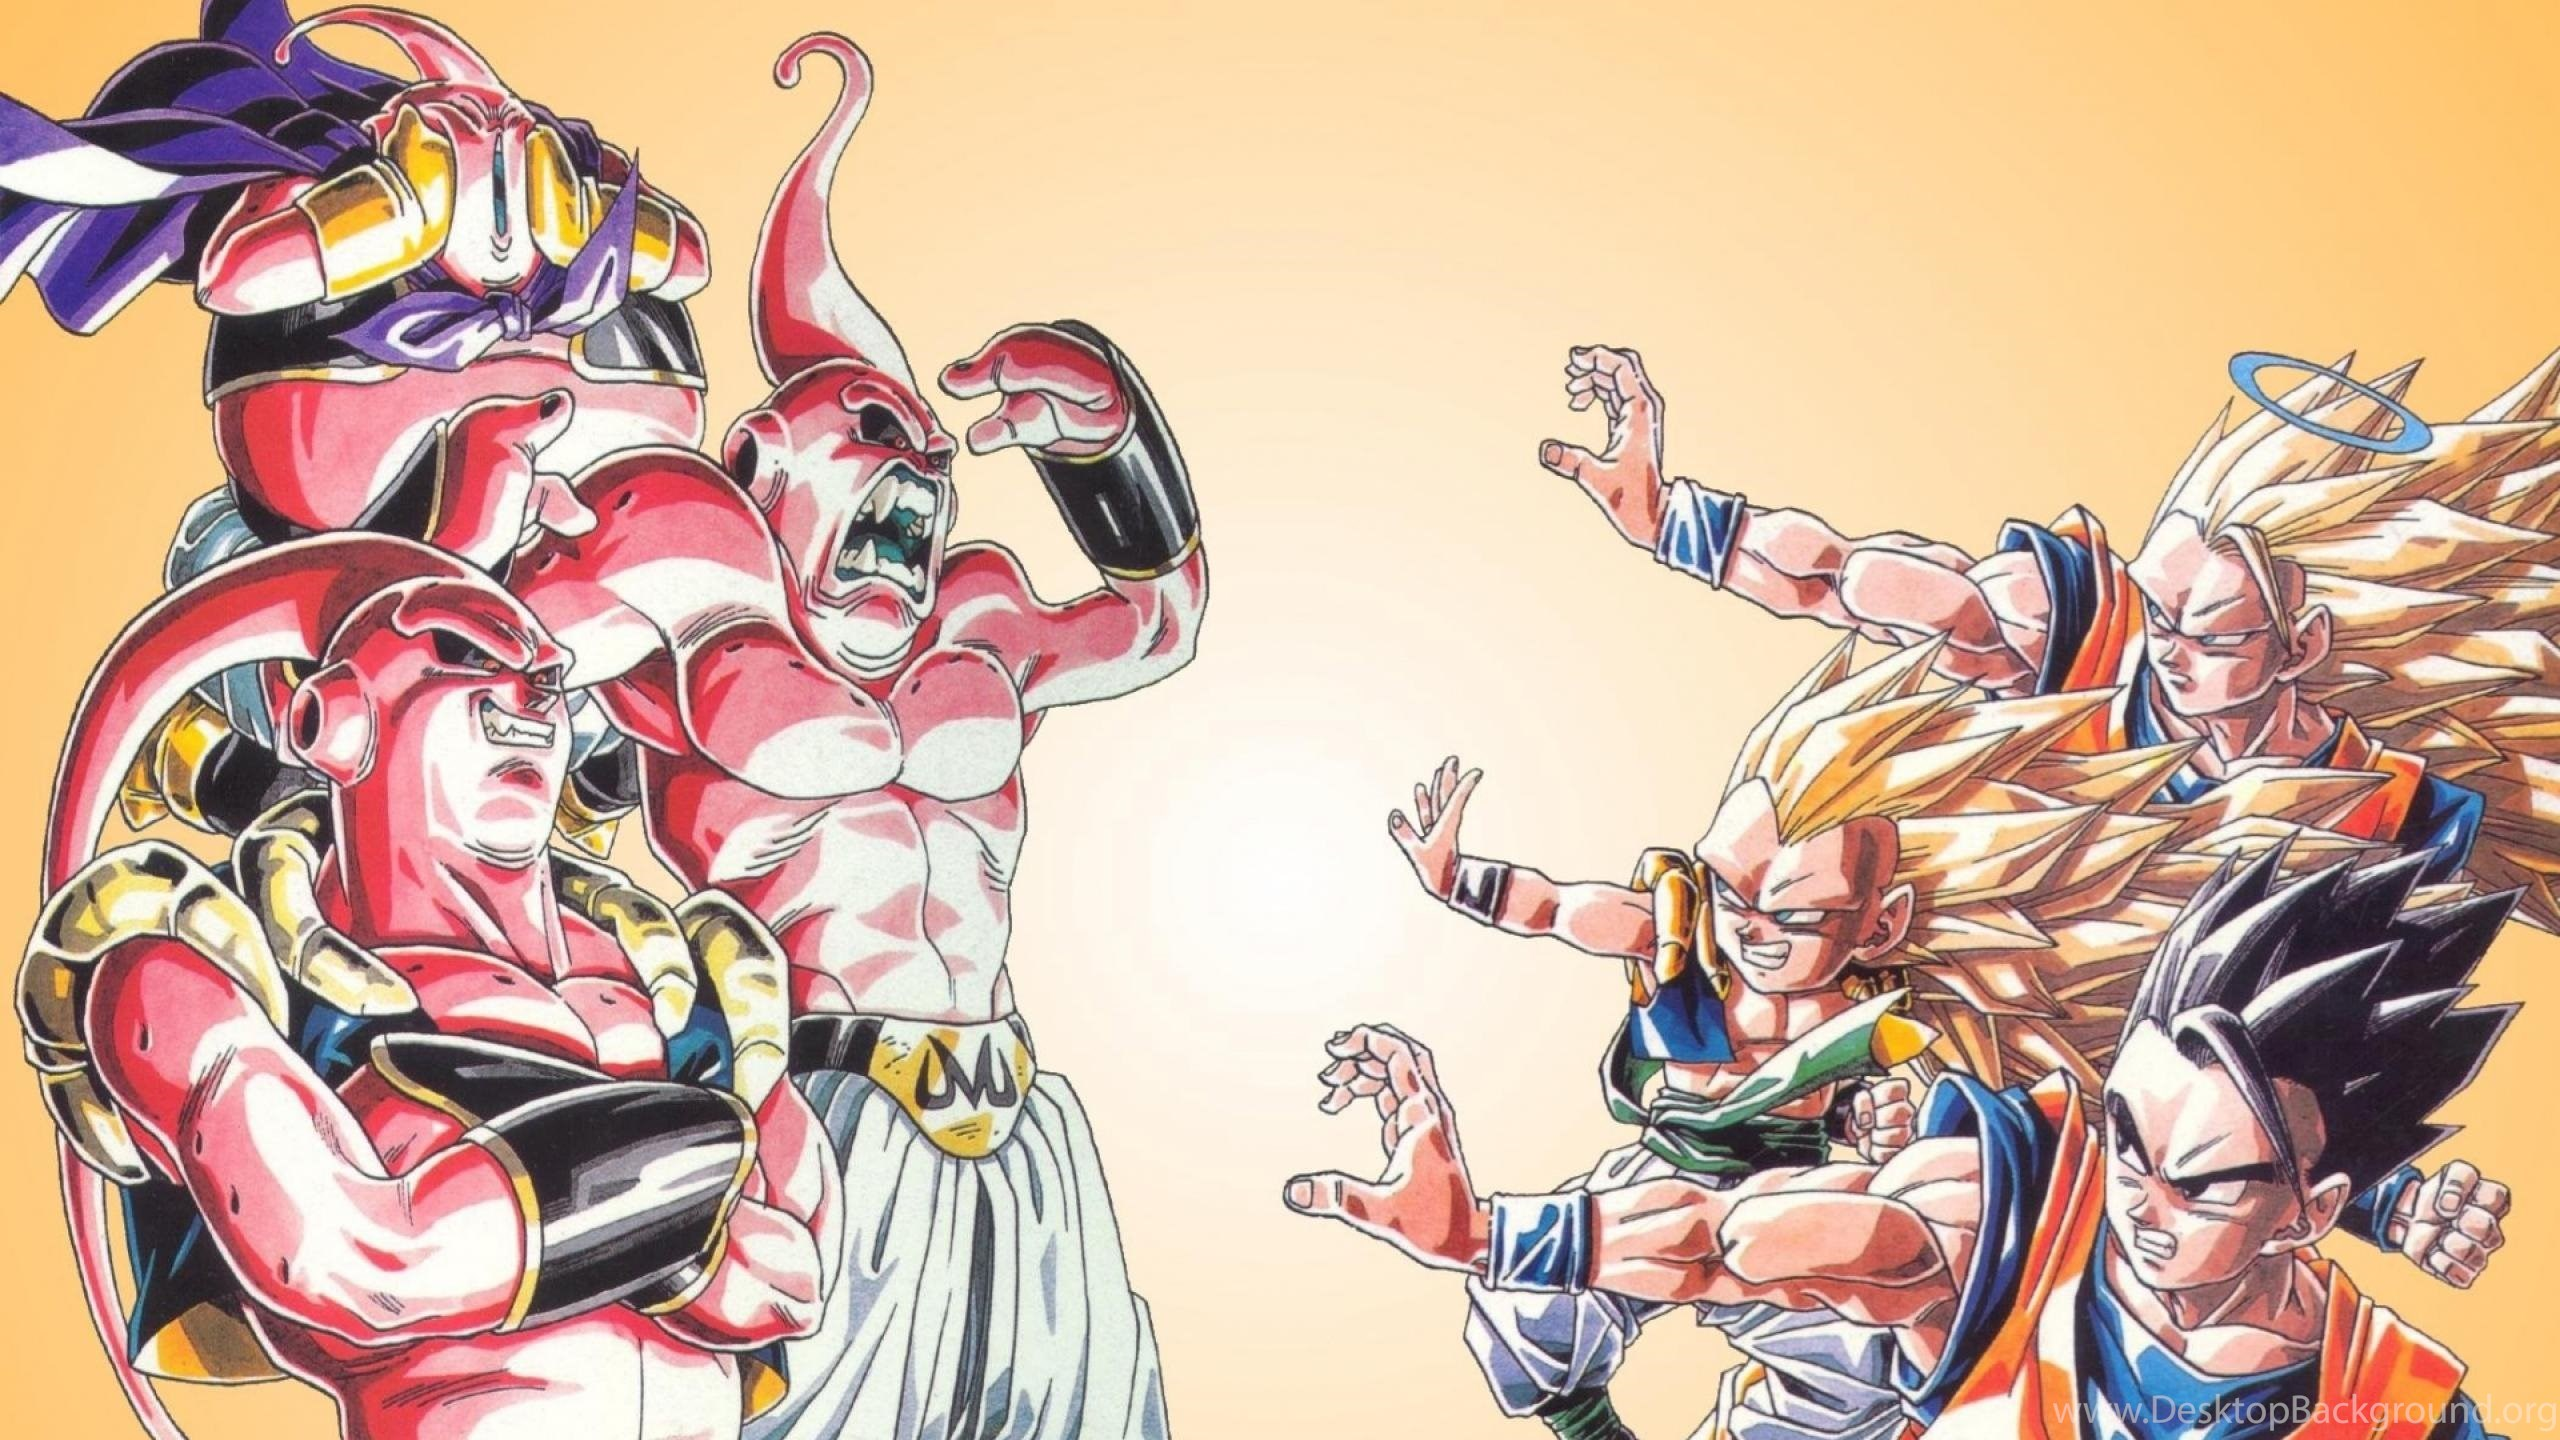 Dbz Dual Screen Wallpapers: Wallpapers Dragonball Anime Dragon Ball Z All 2560x1600